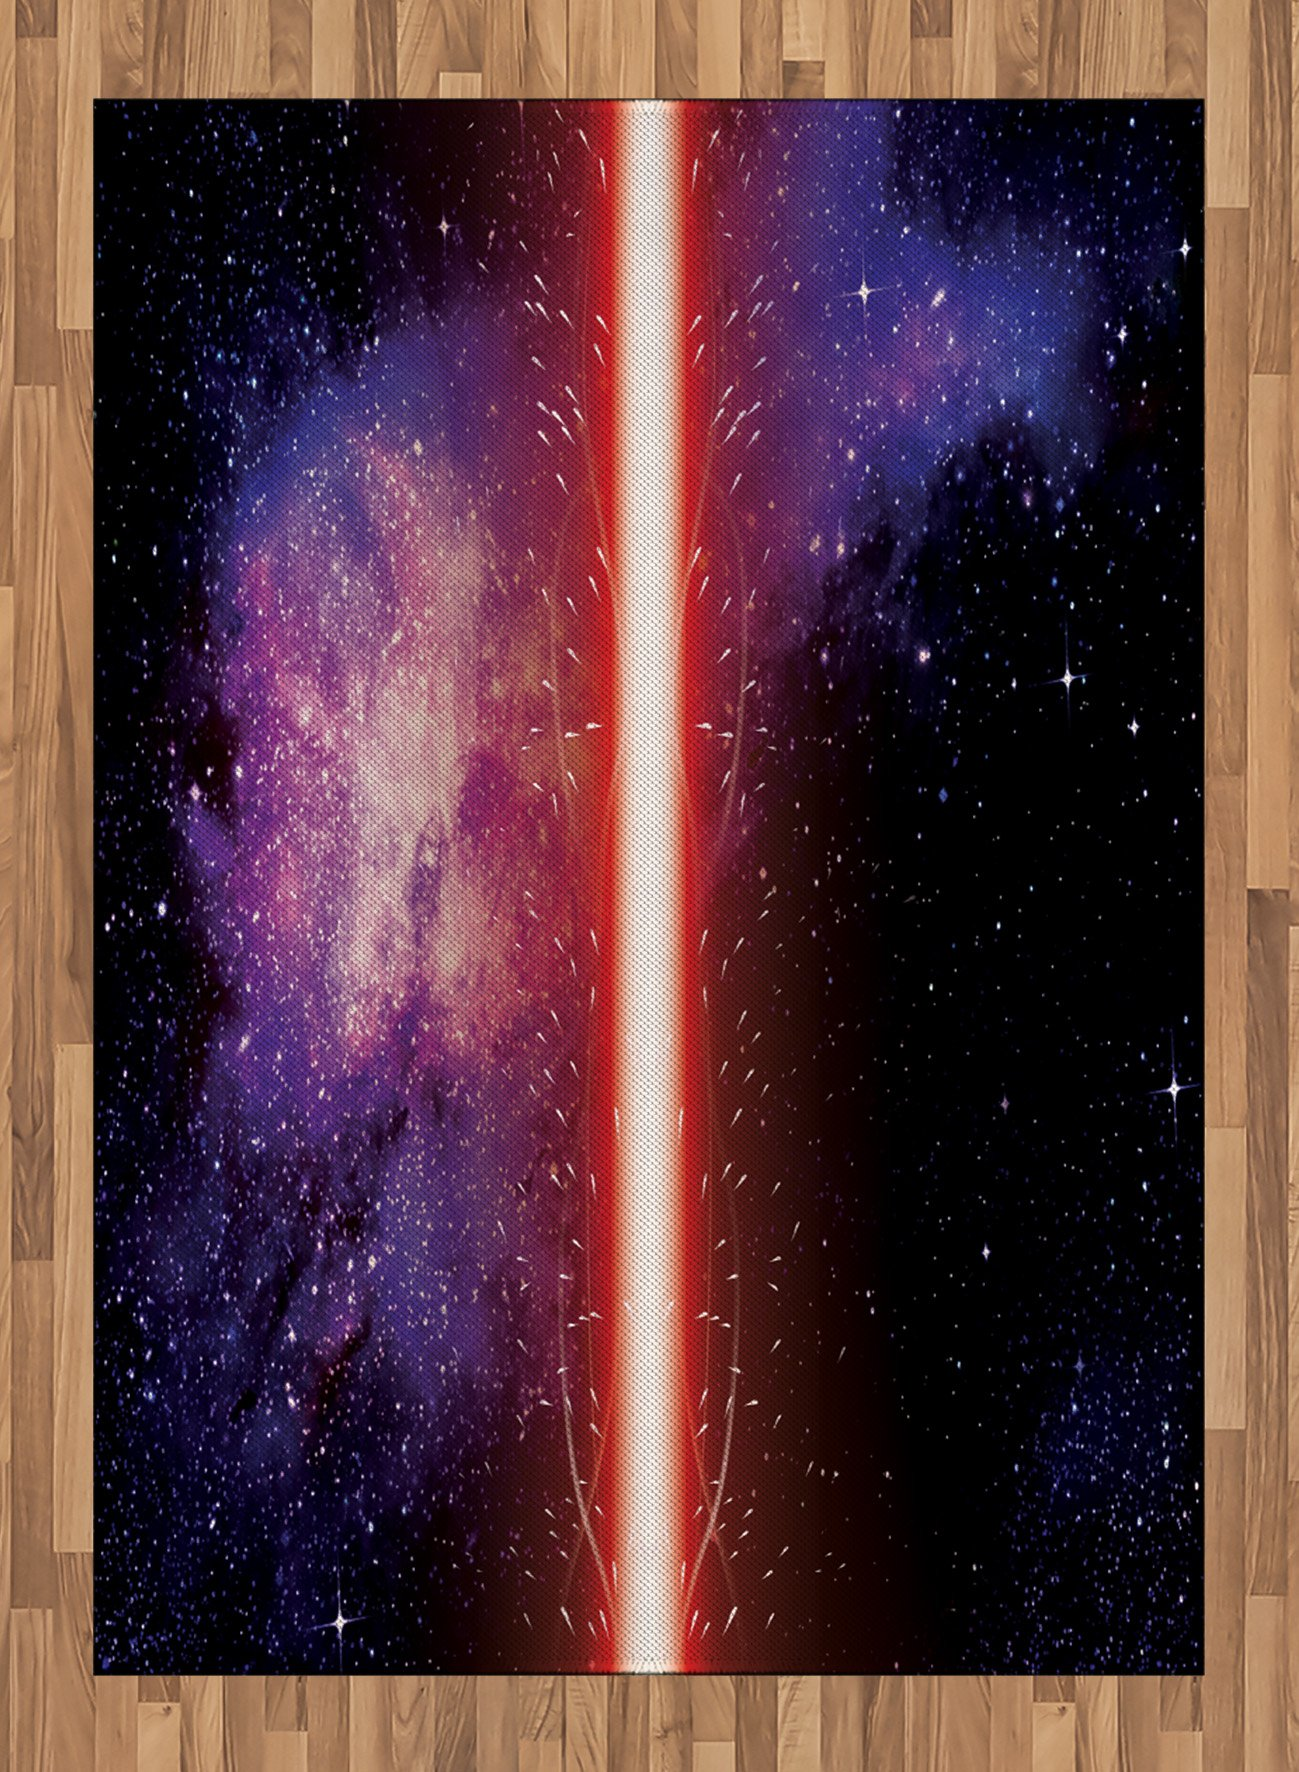 Galaxy Area Rug by Ambesonne, Famous Movie Weapon Fantastic Galaxy War between Enemies Theme Sword with Red, Flat Woven Accent Rug for Living Room Bedroom Dining Room, 5.2 x 7.5 FT, Black